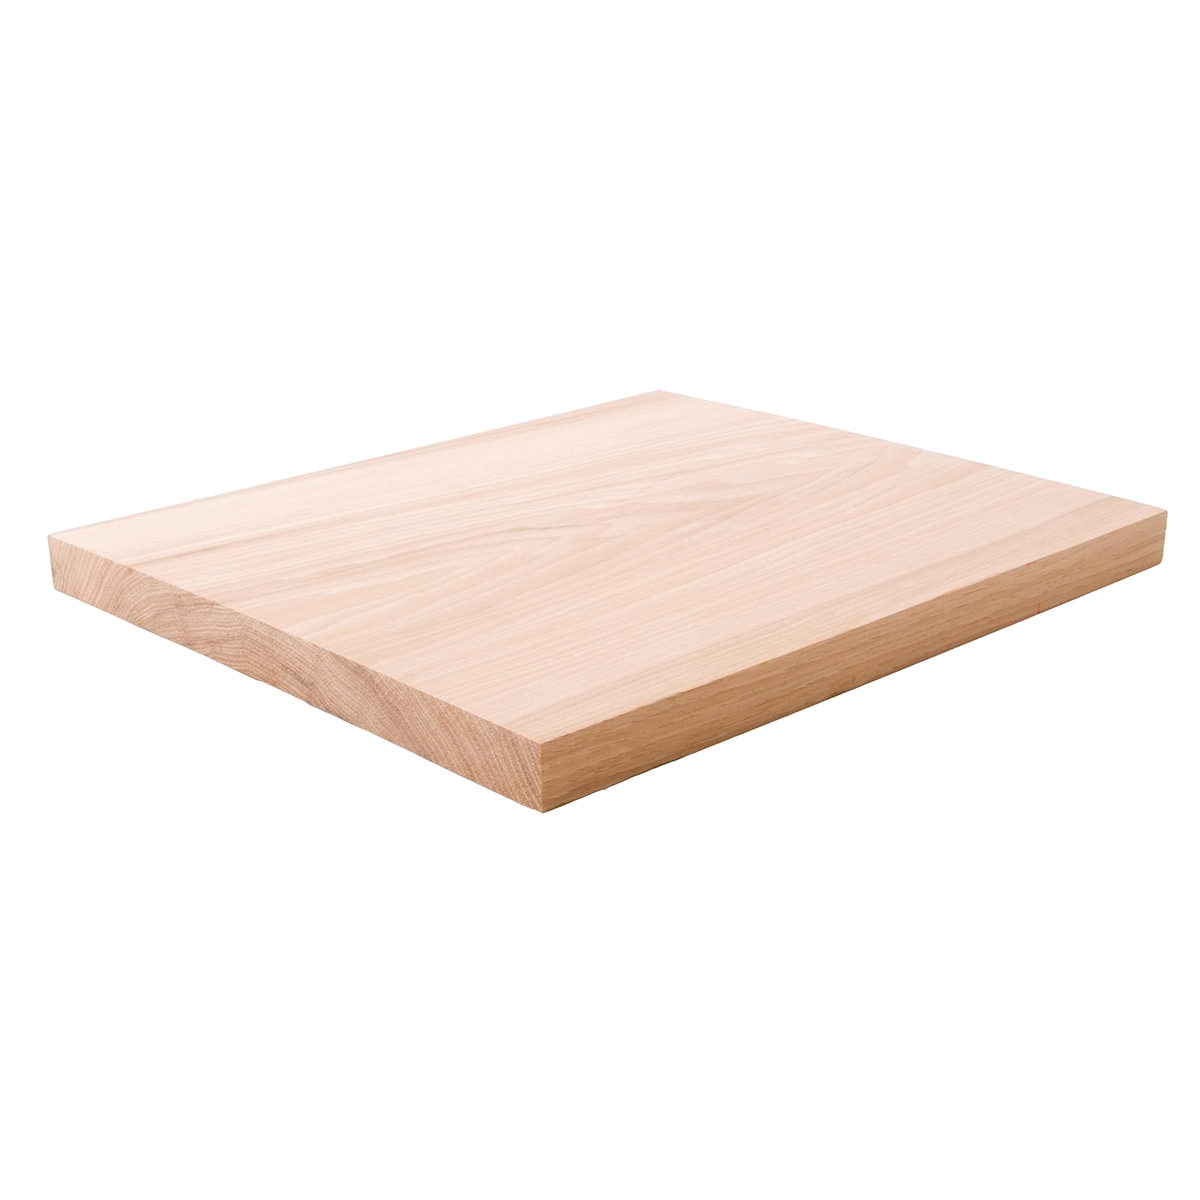 HICKORY boards lumber 1//4 X11 X 12 surface 4 sides 12 BY WOODNSHO